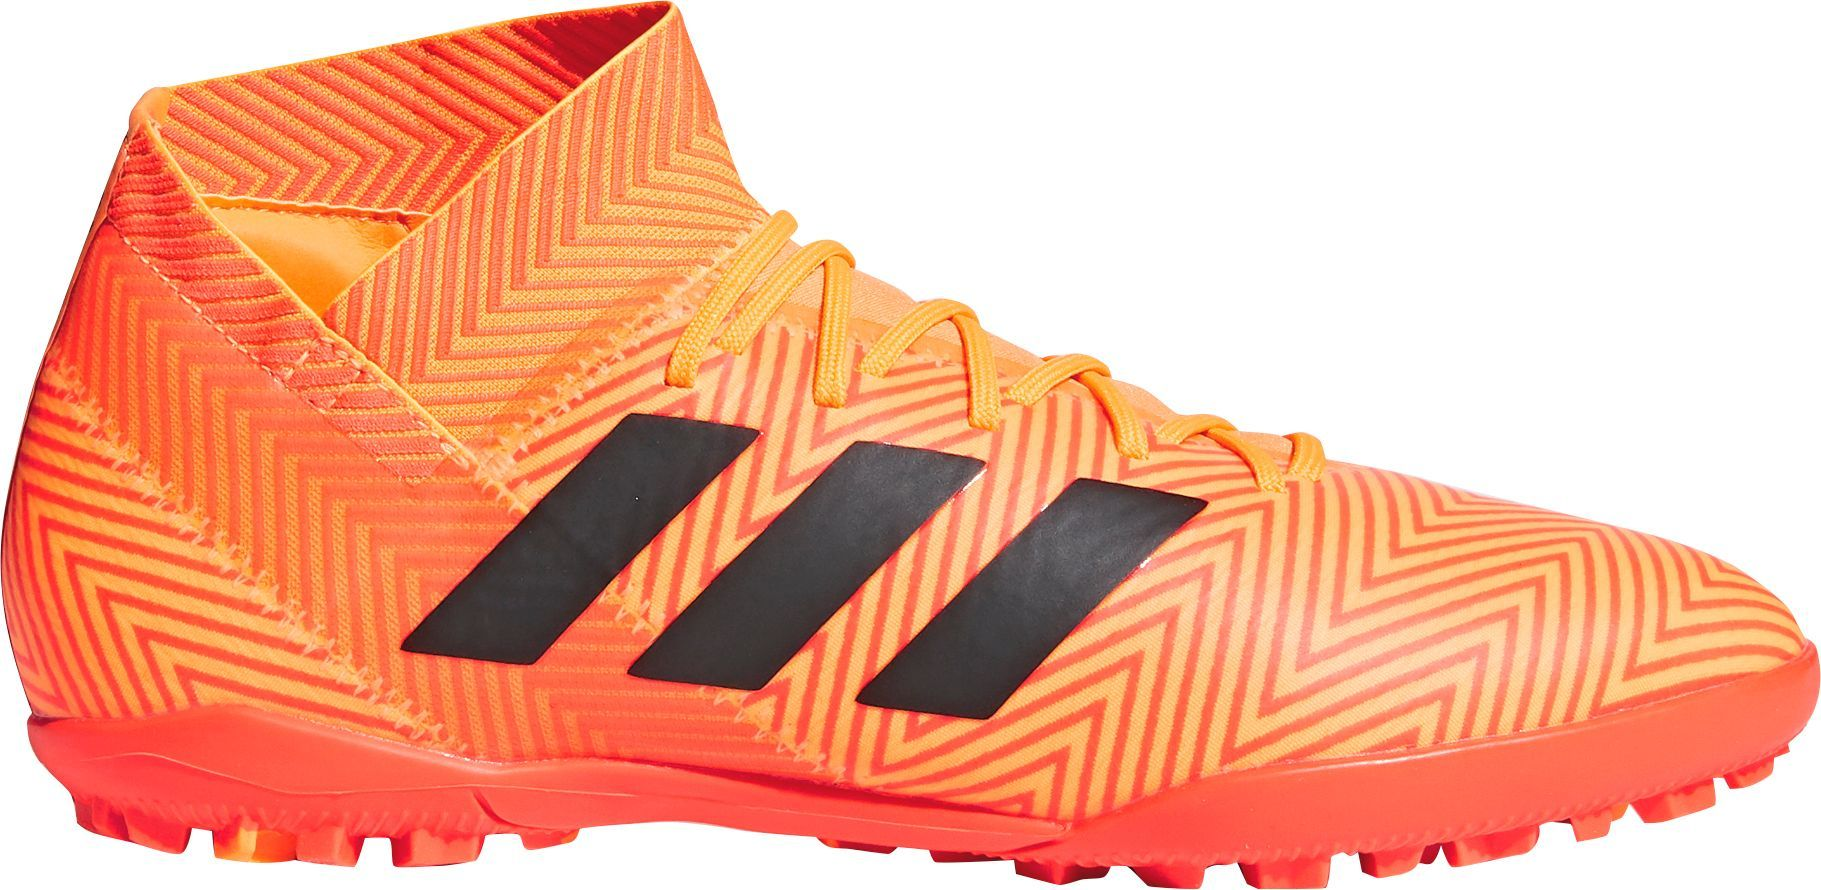 1feb1a8e6d00 adidas Men s Nemeziz Tango 18.3 Turf Soccer Cleats